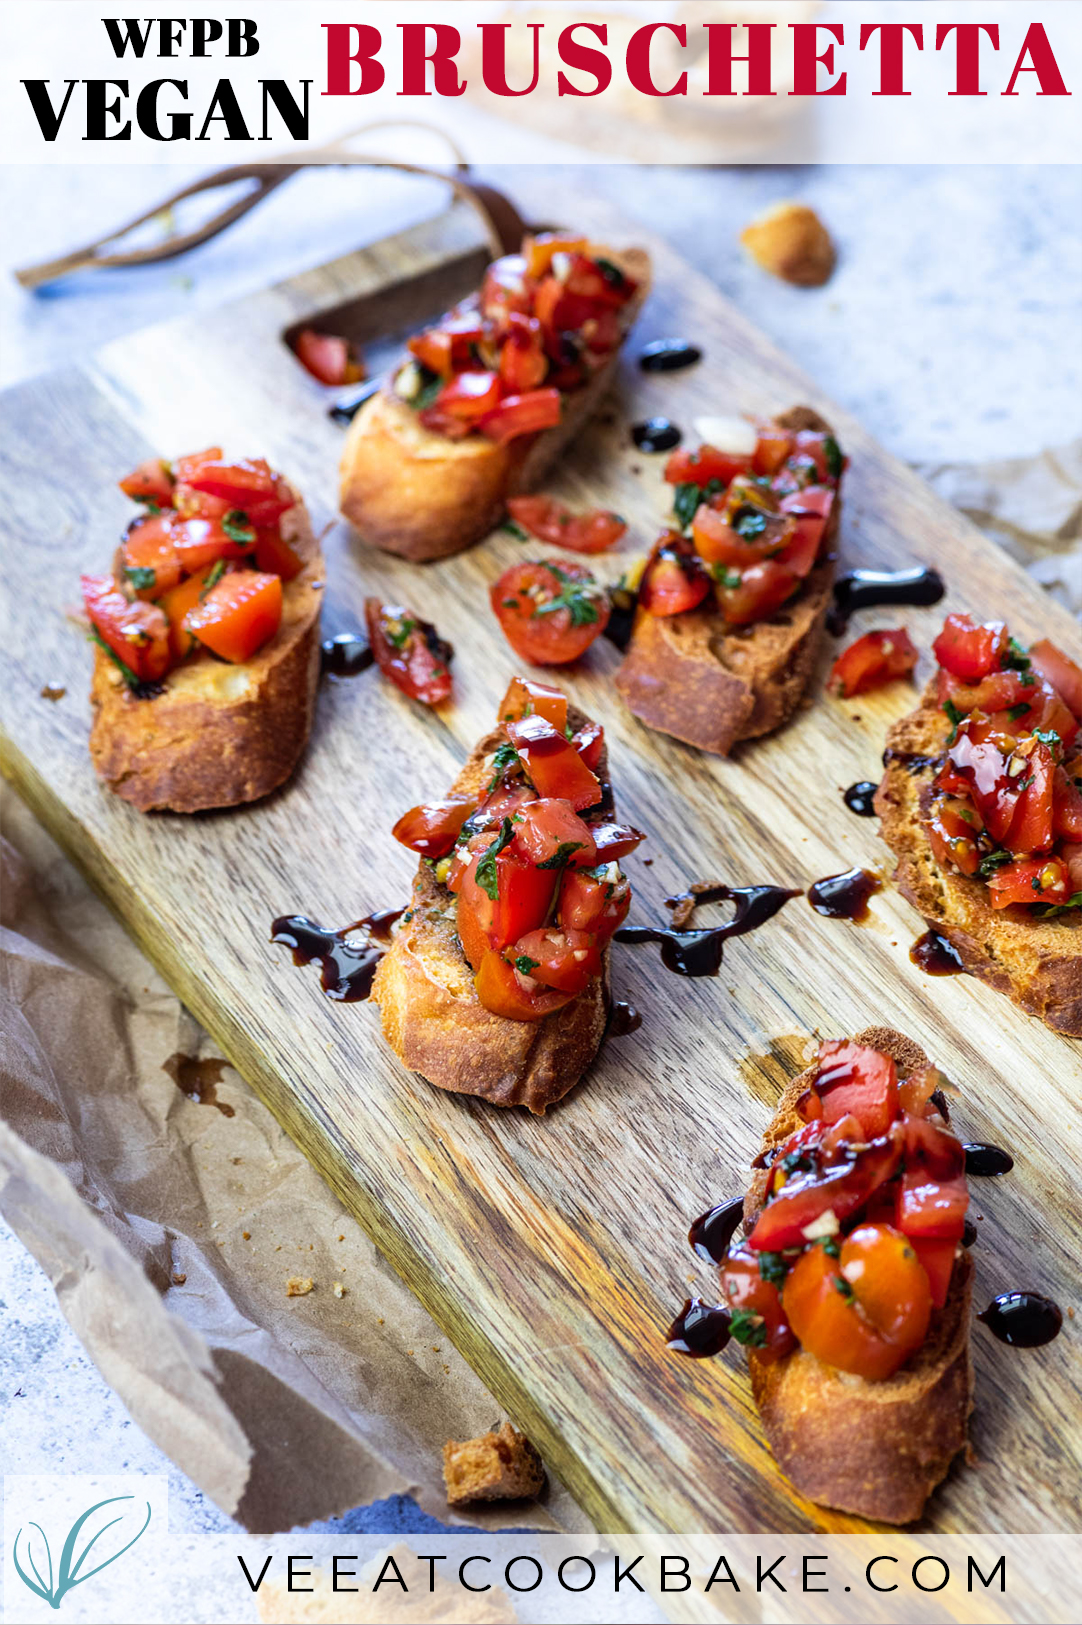 Vegan Bruschetta Crostini served on a board with text